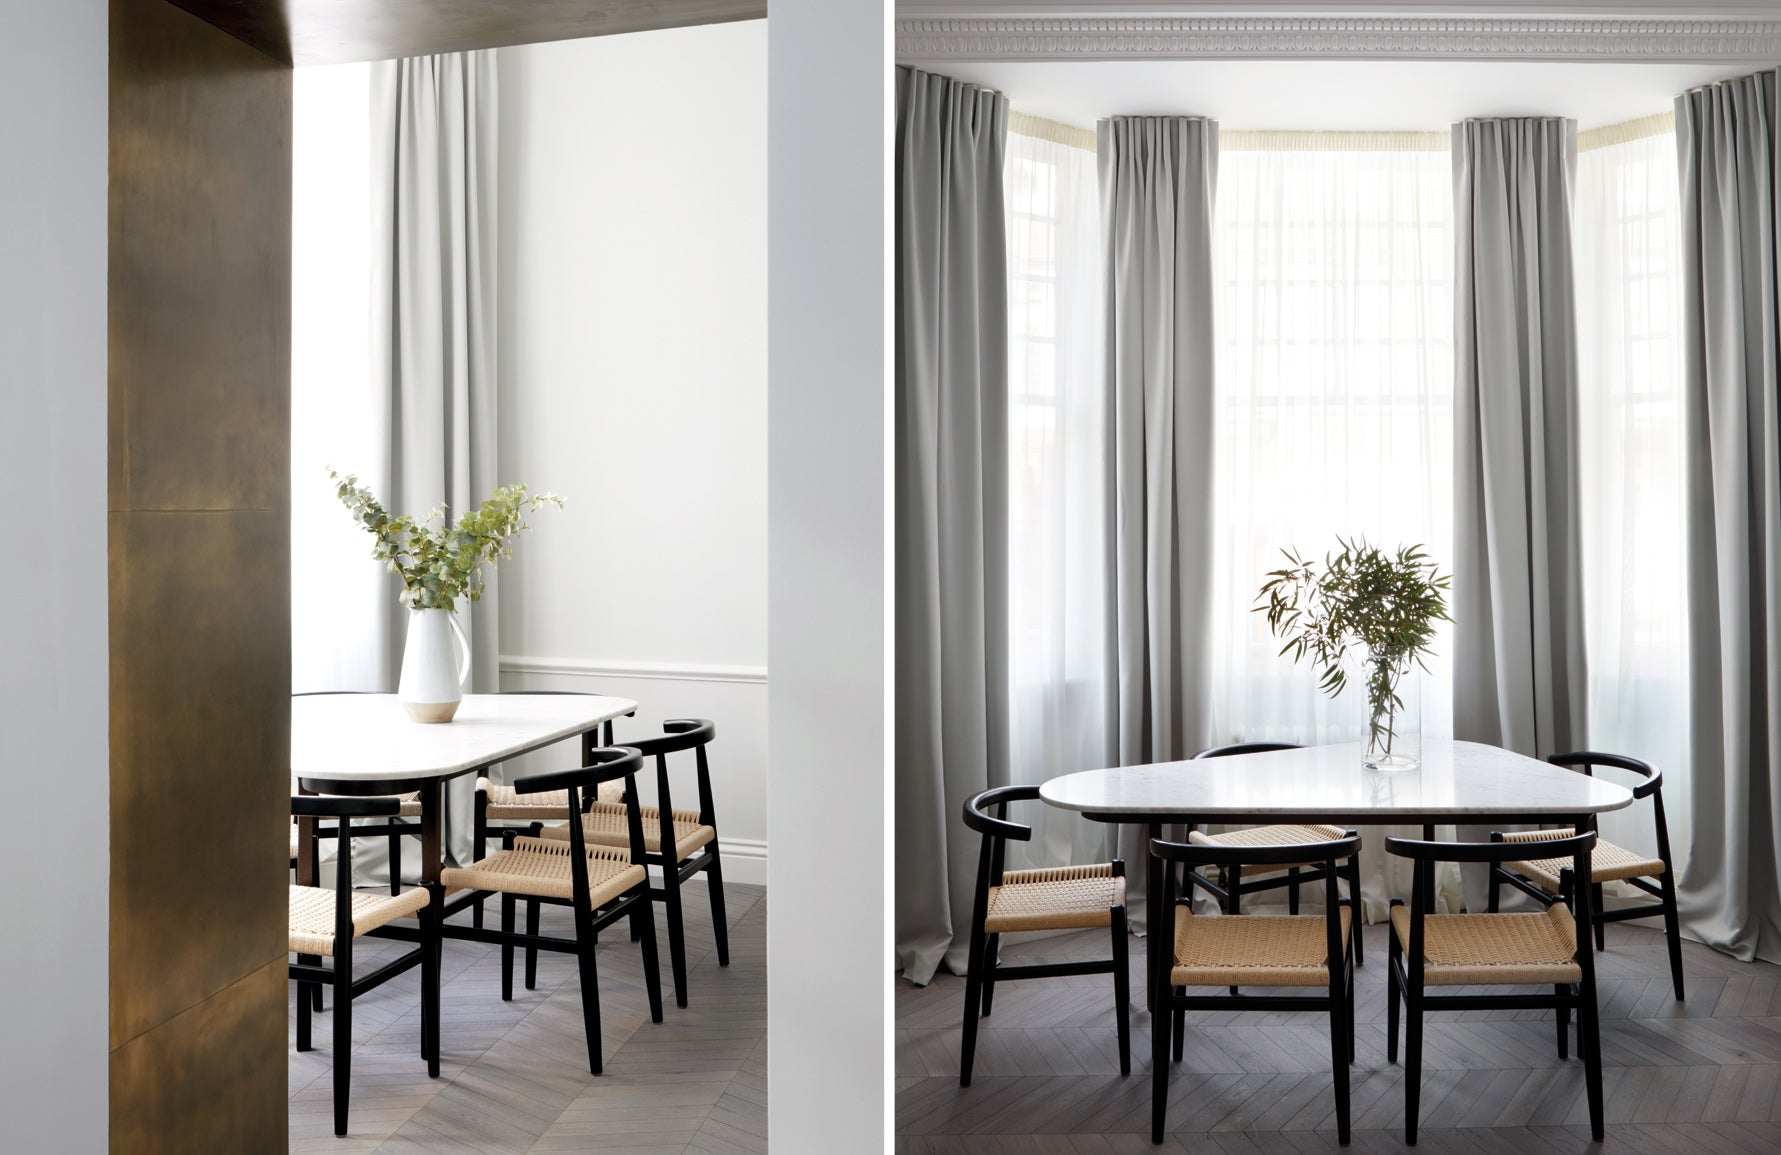 Design Haus Liberty London | Minimalist Dining Room | The Luxurist |  LuxDeco.com